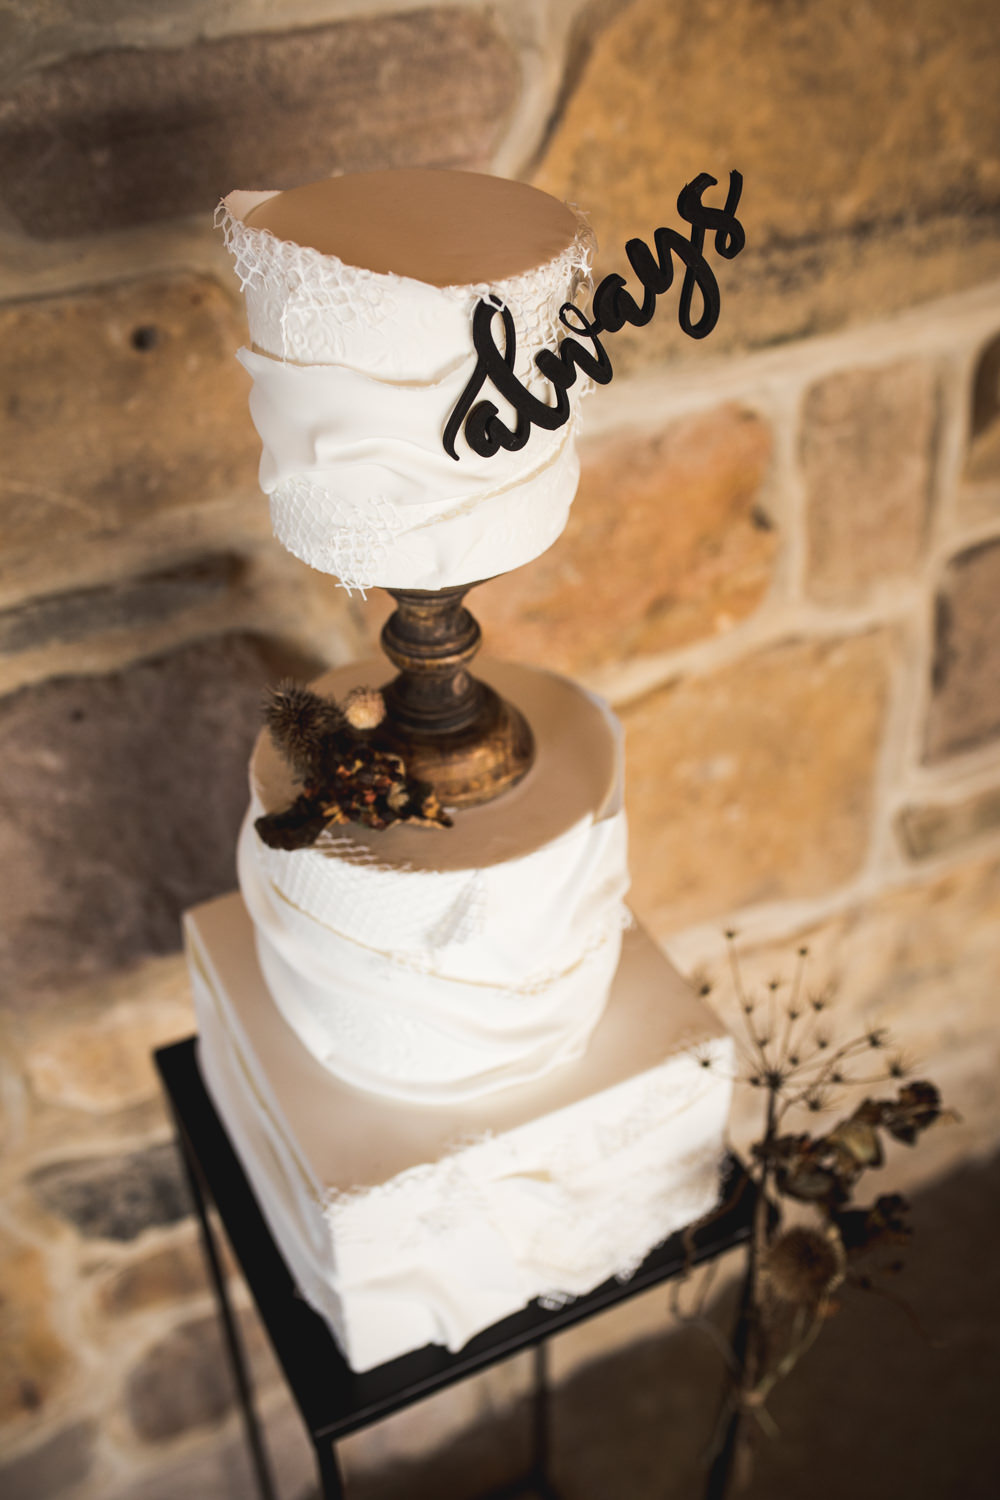 Buttercream Cake Always Topper Dried Flower Wedding Ideas Dan Lambourne Photography